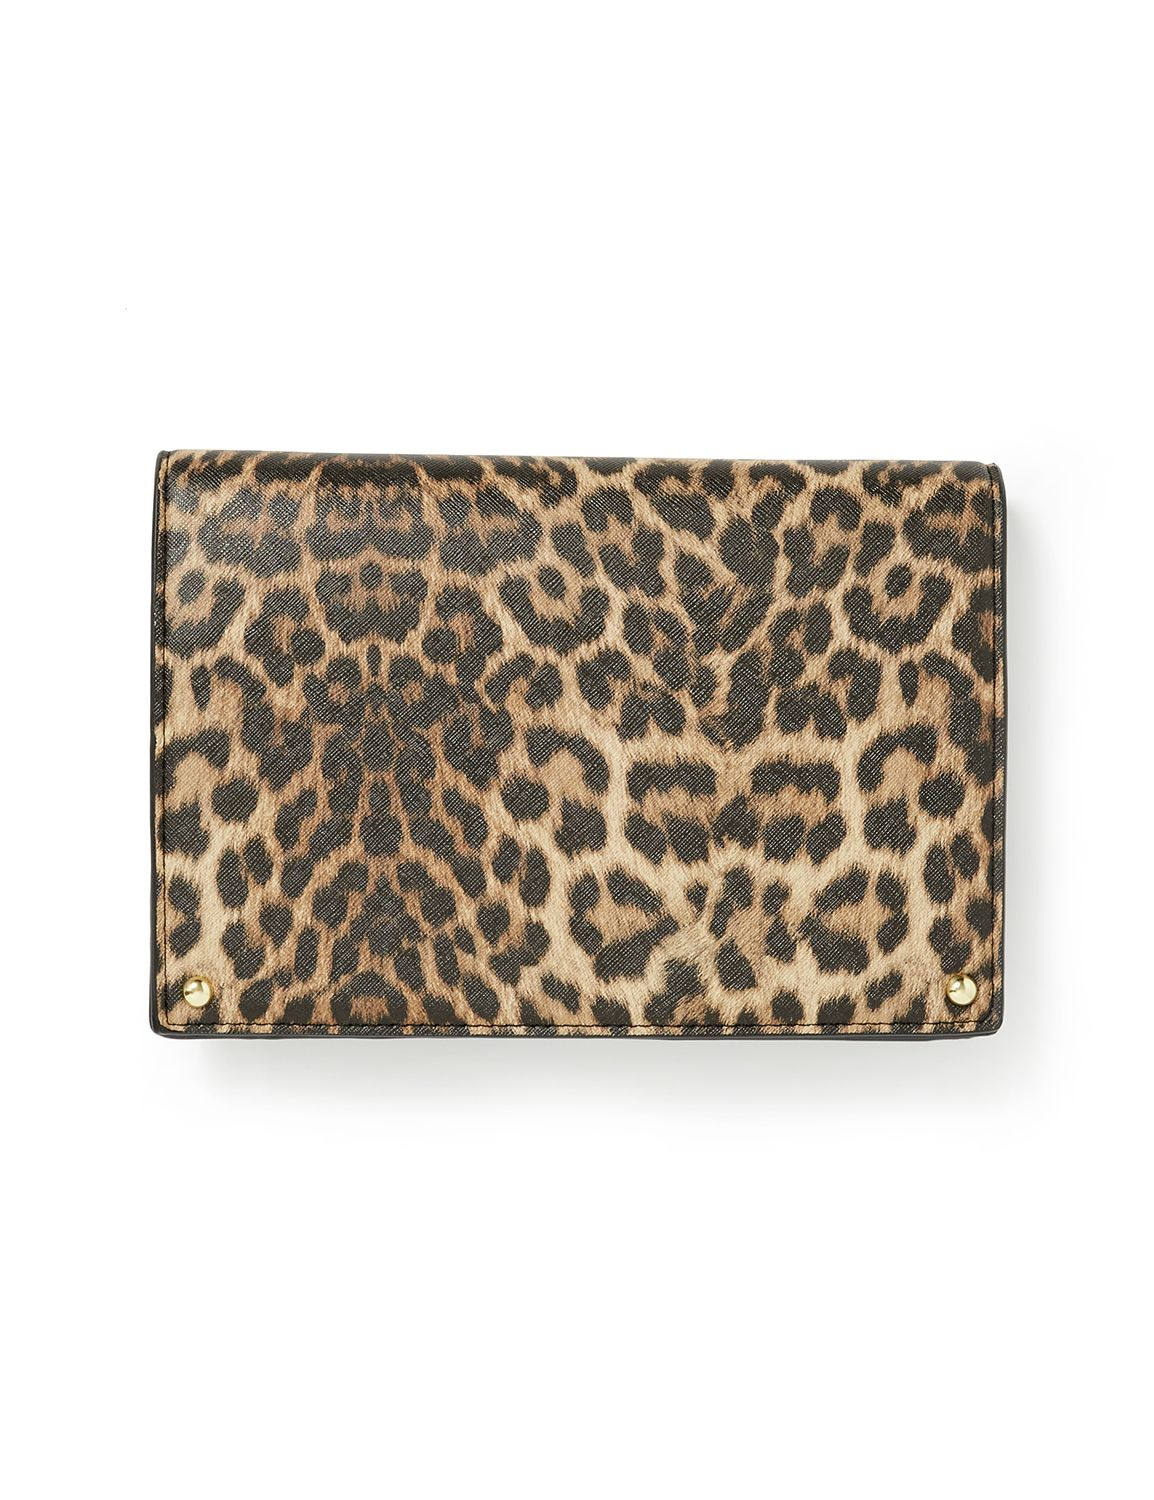 Leopard Print Clutch Leopard Handbag w/ Chain MP-300092158